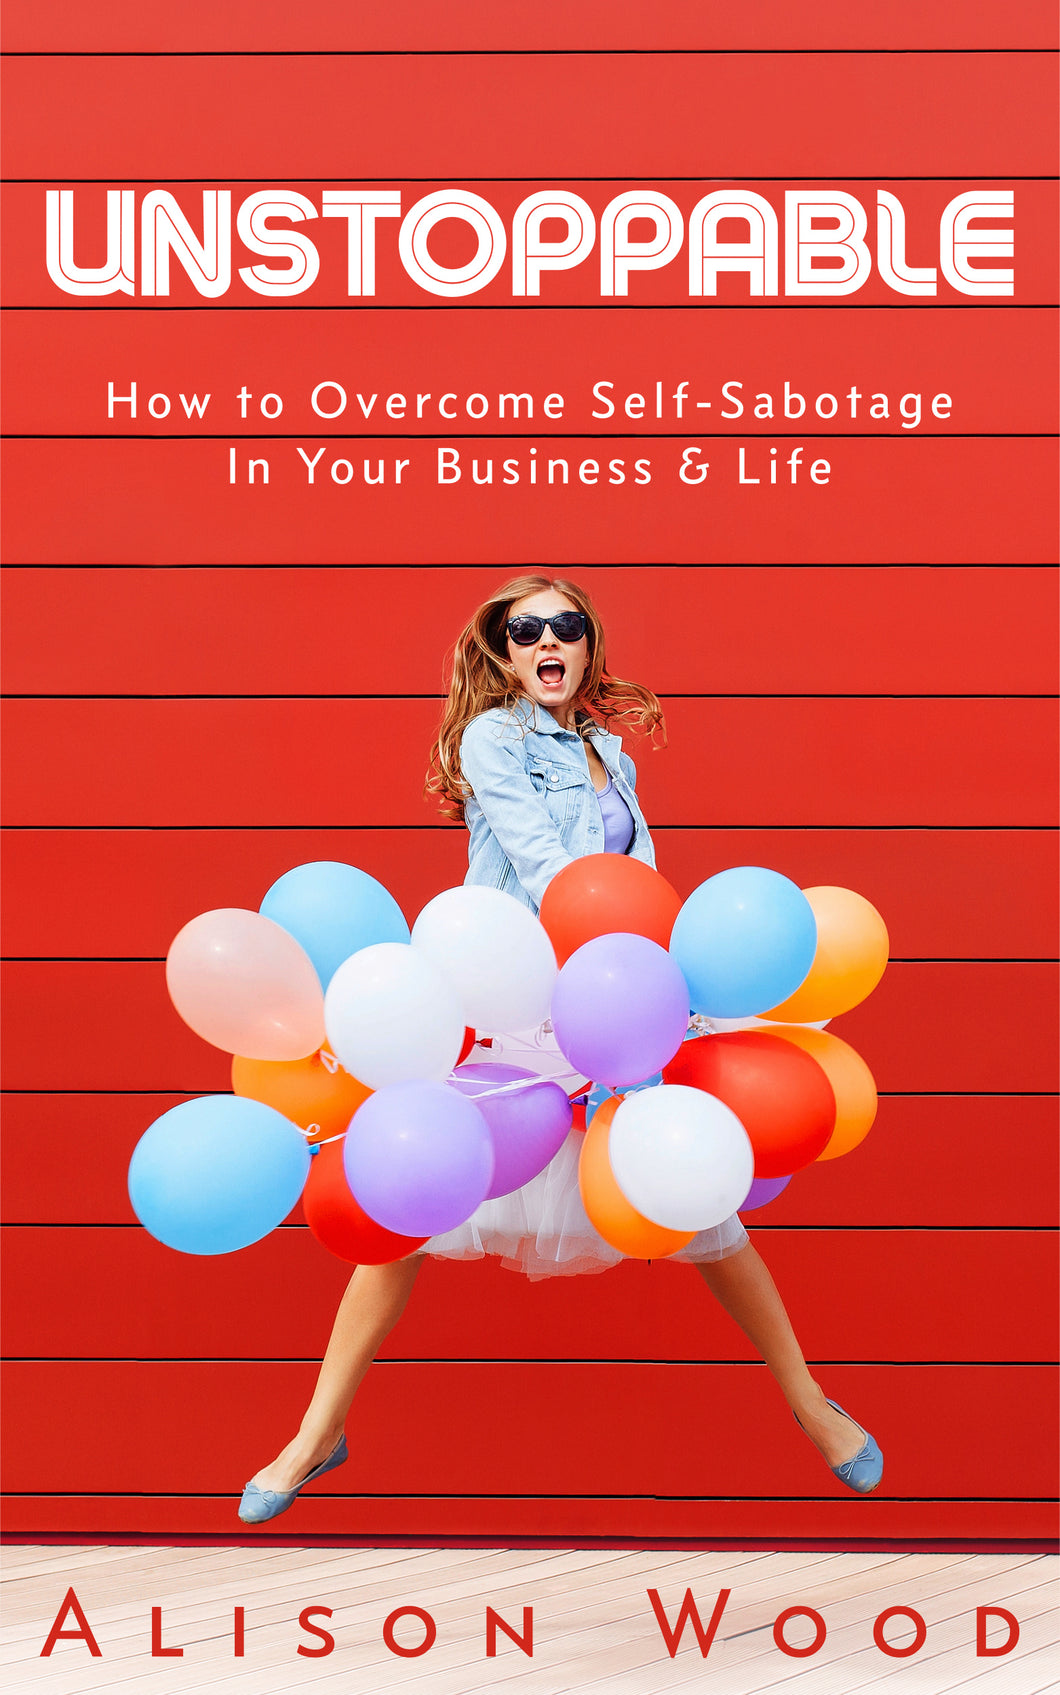 Unstoppable: How to Overcome Self-Sabotage In Your Business & Life